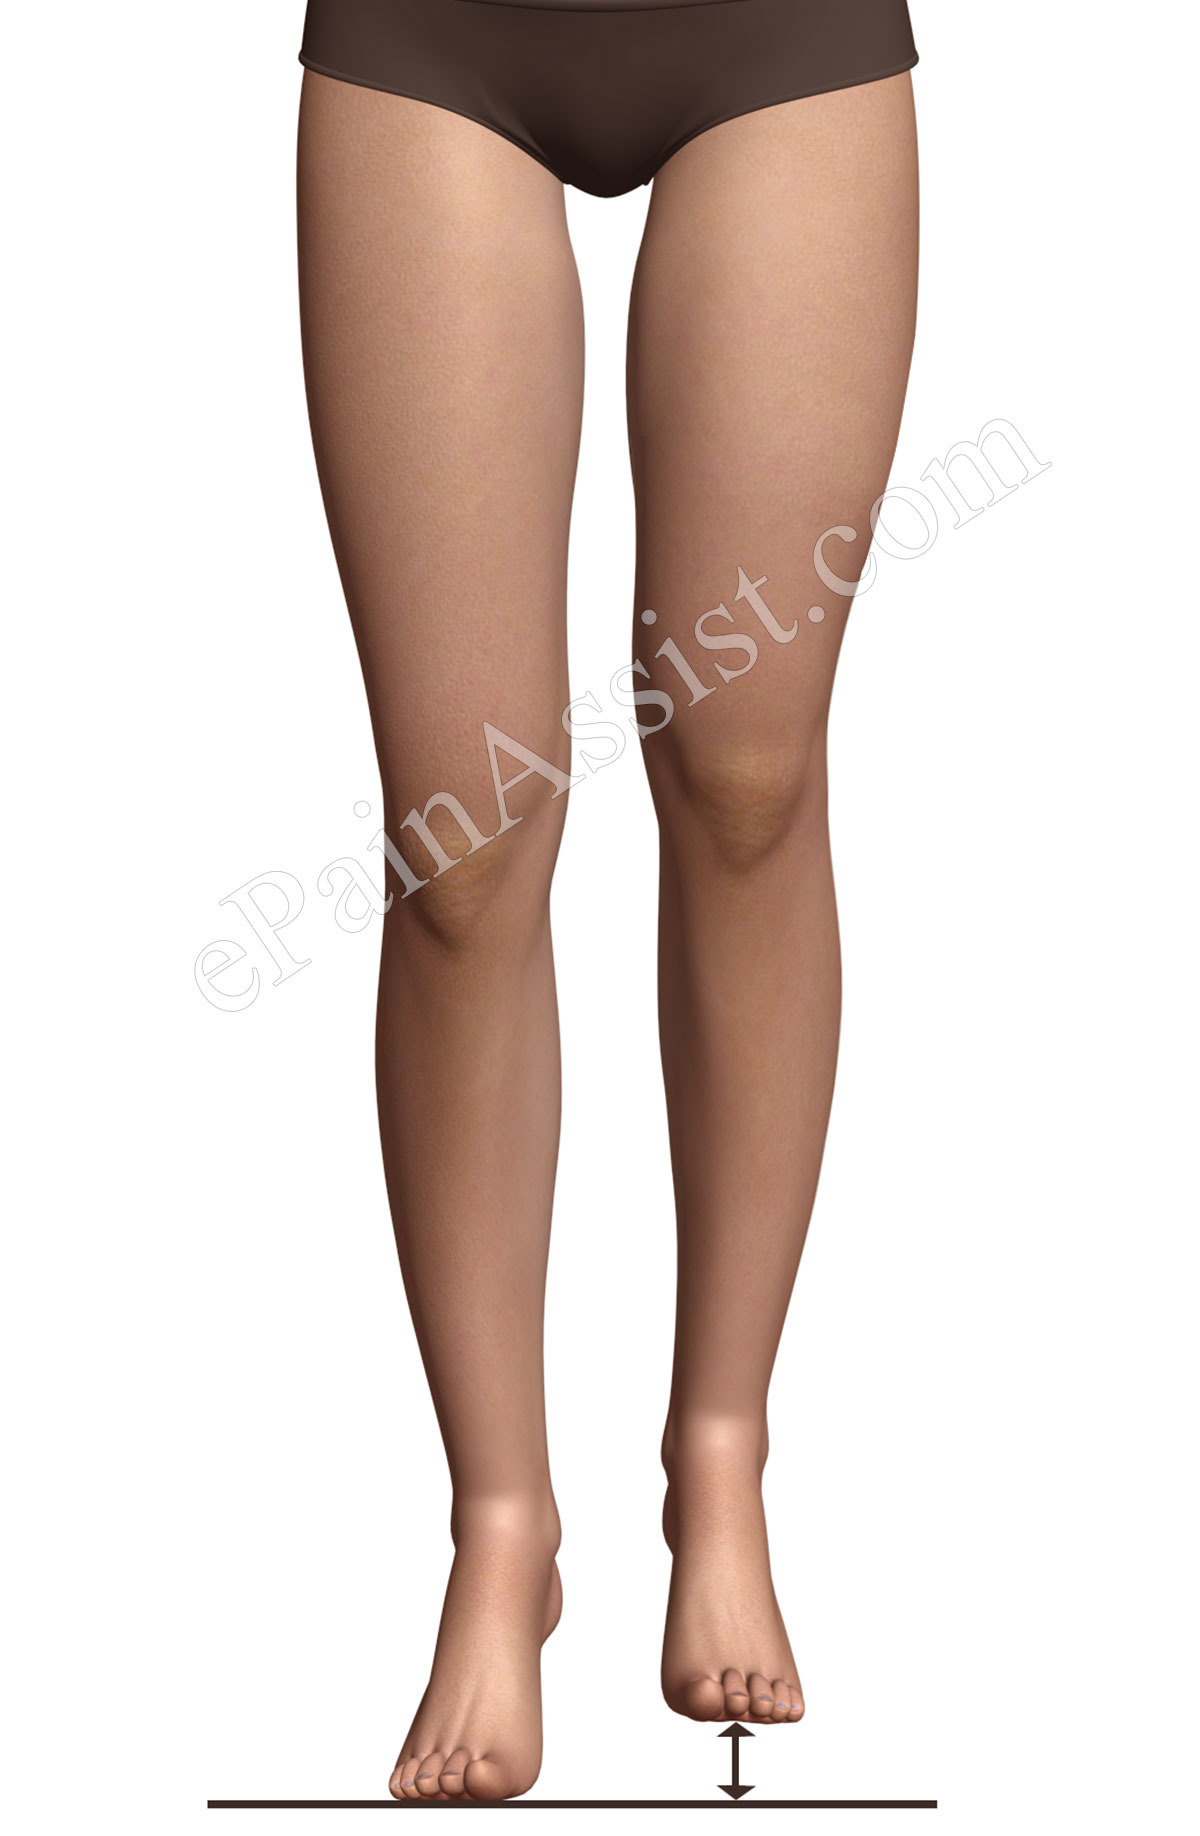 Iliotibial Band Syndrome or Runners Knee may be caused due to the leg length discrepancy